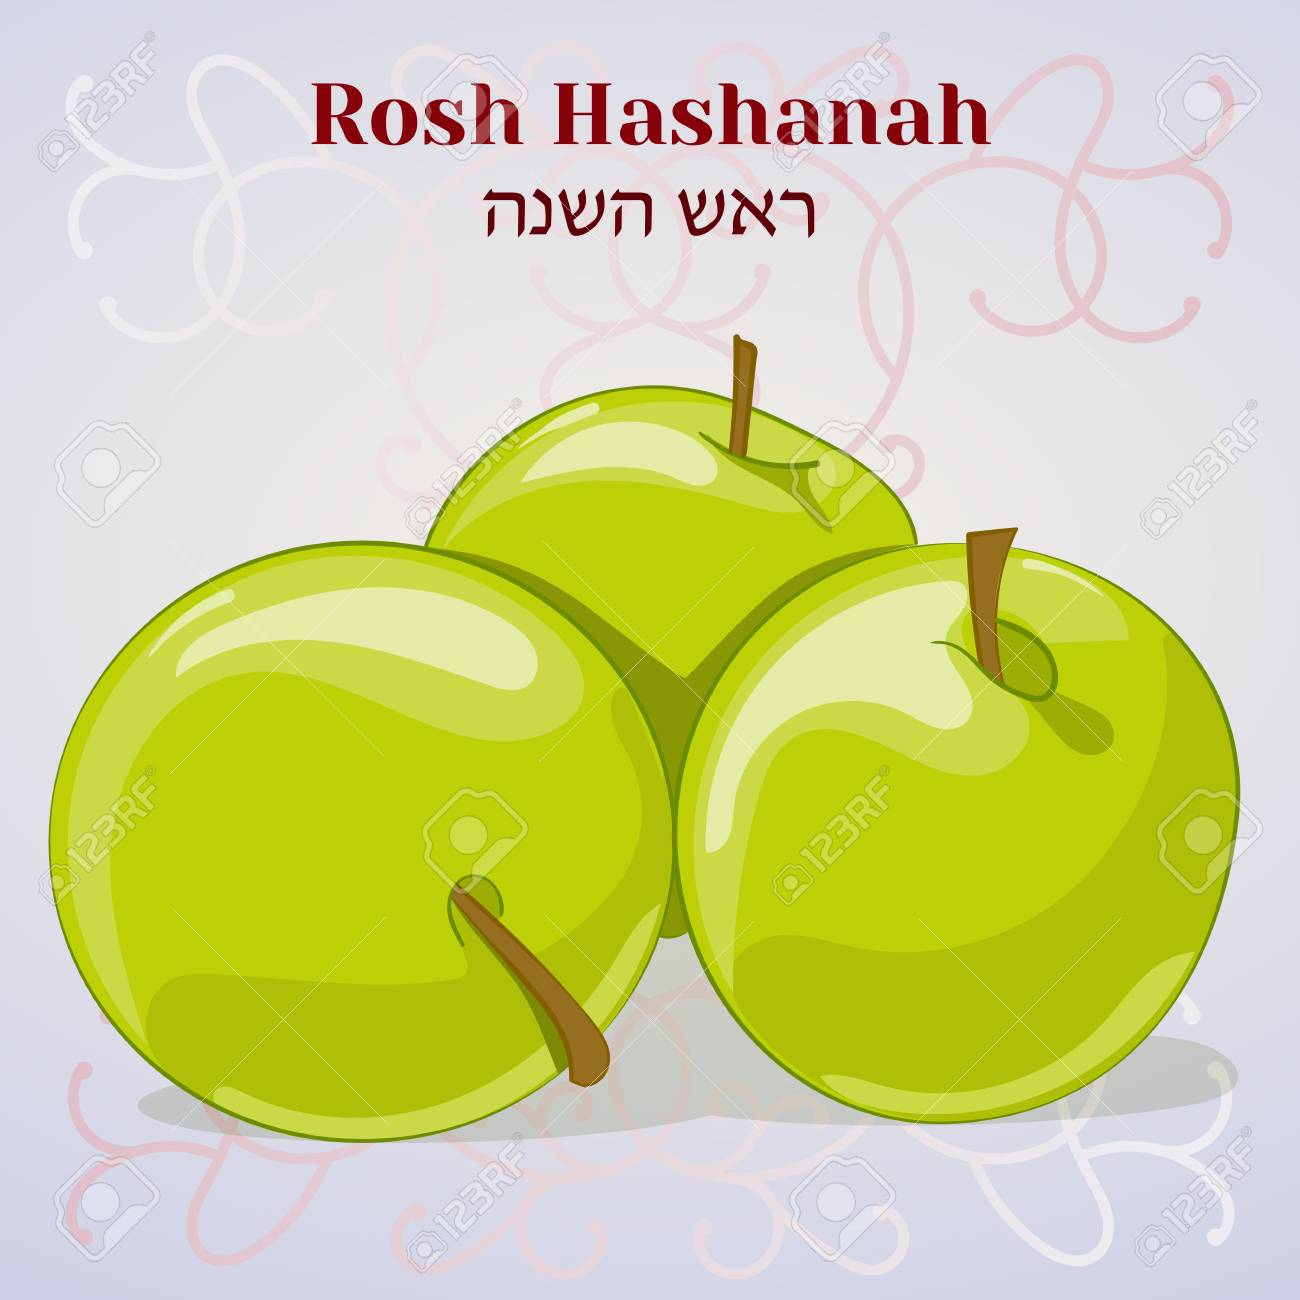 Rosh Hashanah Jewish New Year Greeting Card With Apples In Cartoon